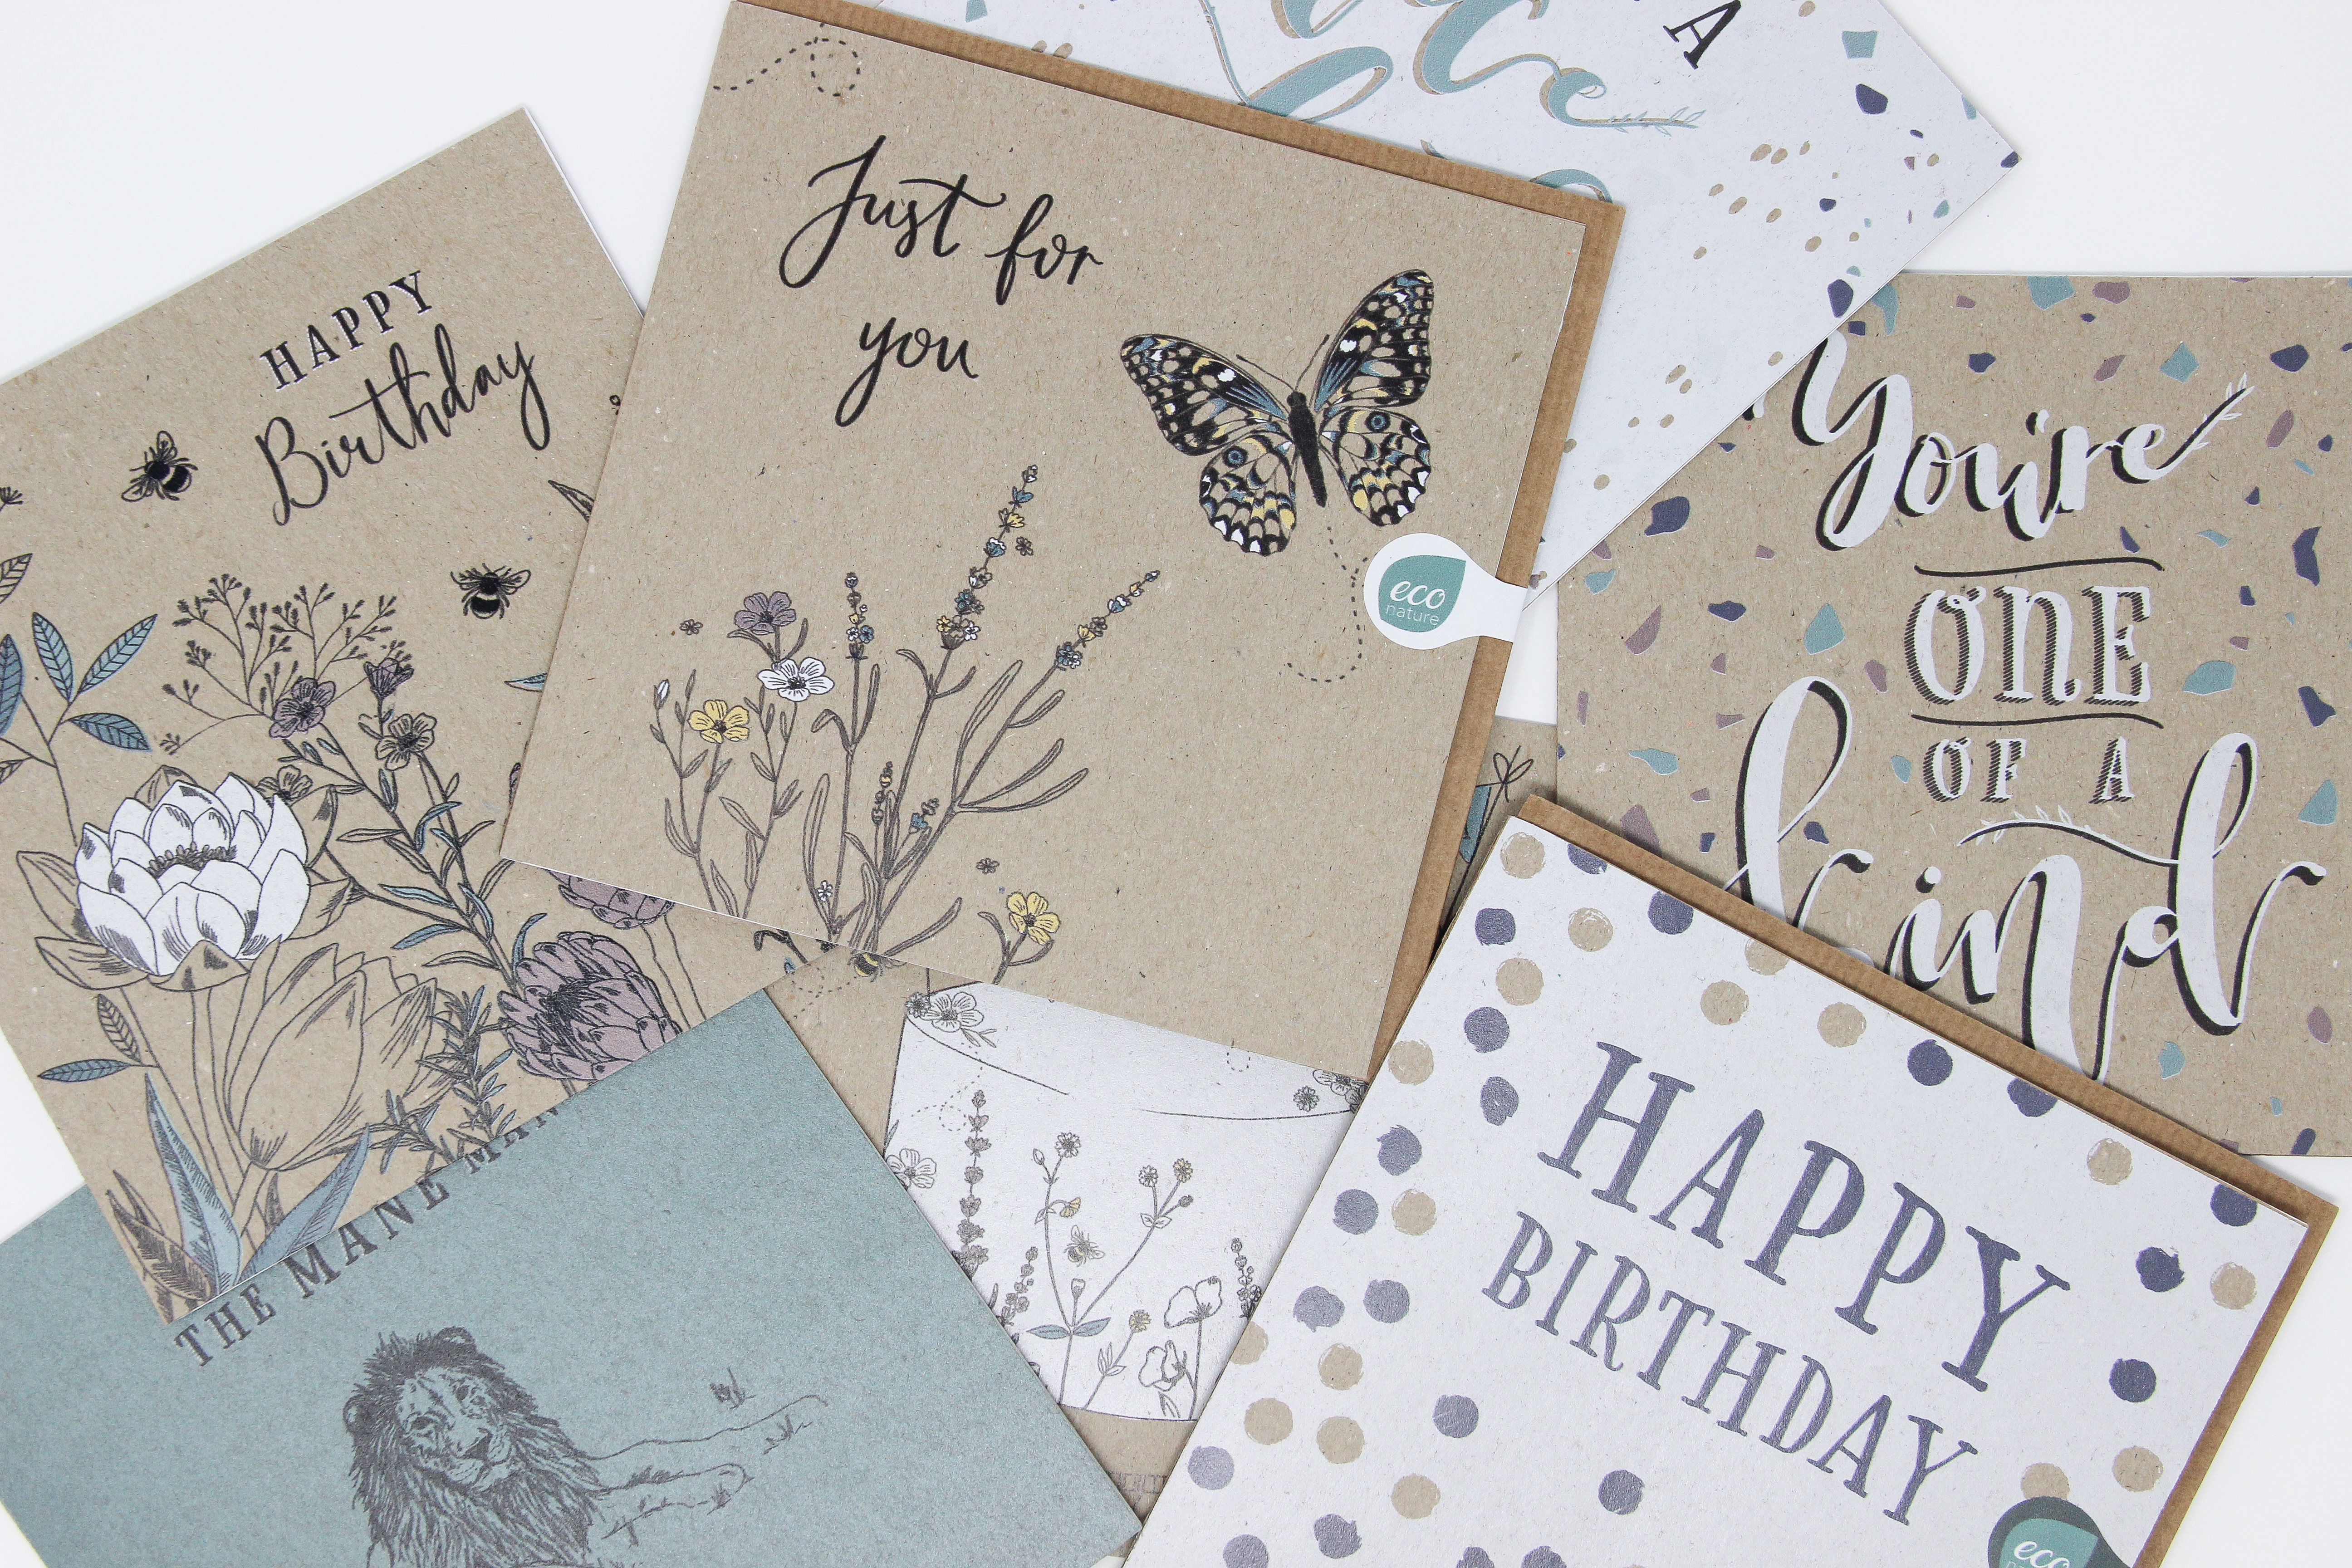 Above: The everyday greeting cards echo the botanical, hand crafted look of the giftwrappings.